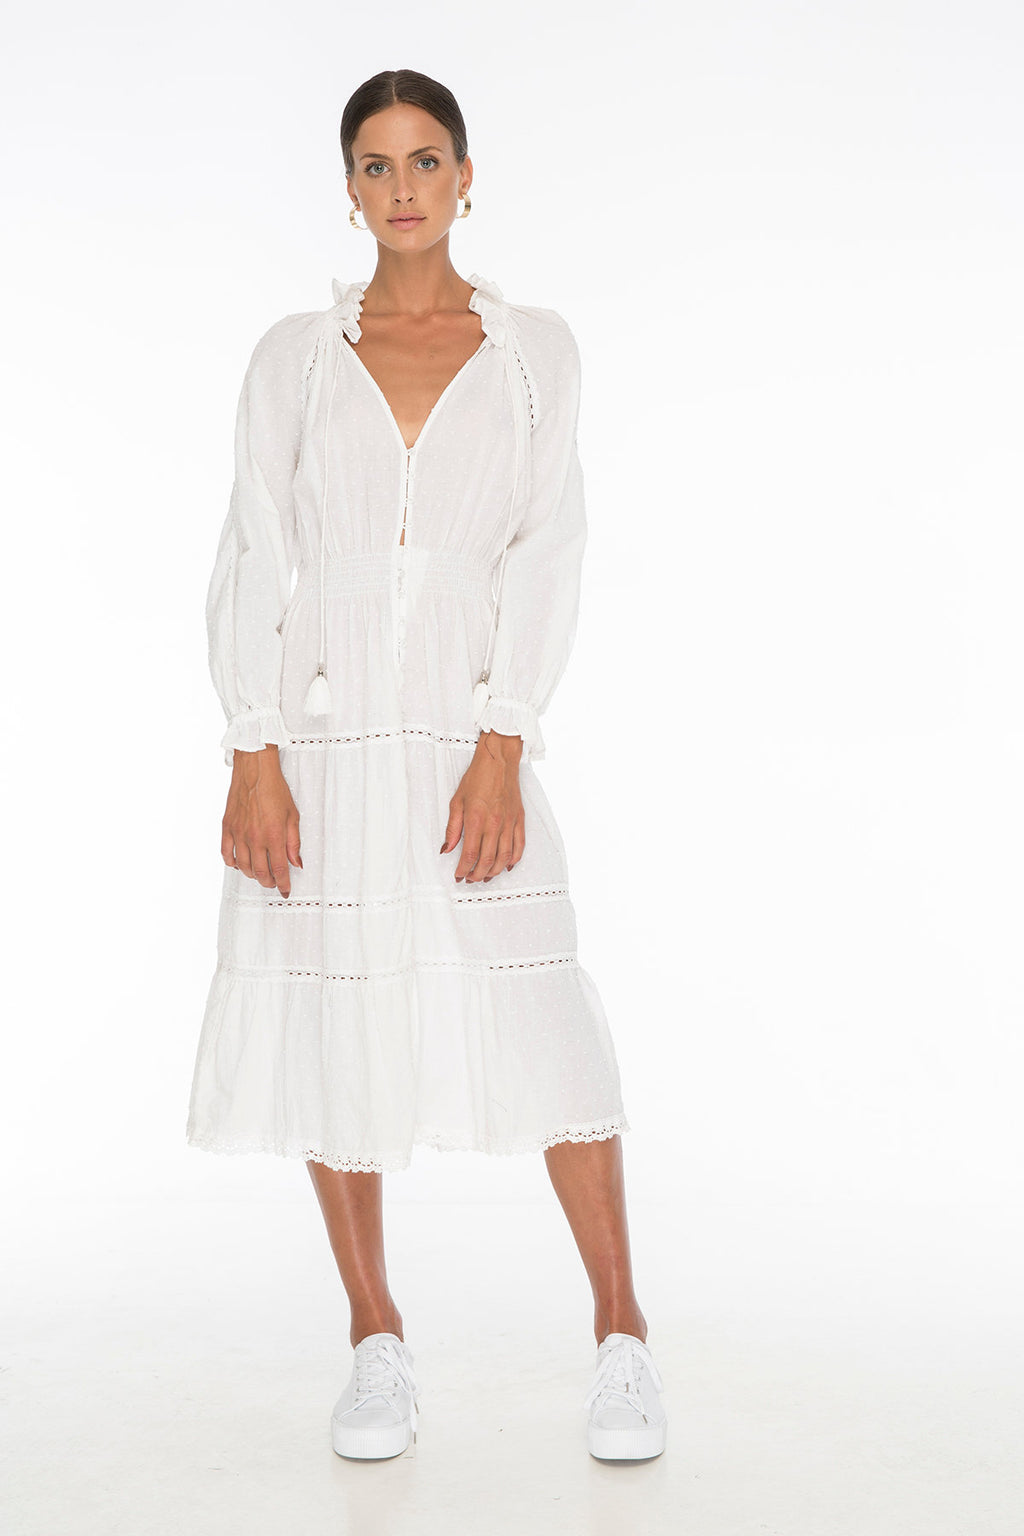 TSO-Victoria Morris White Dress - Zuttion